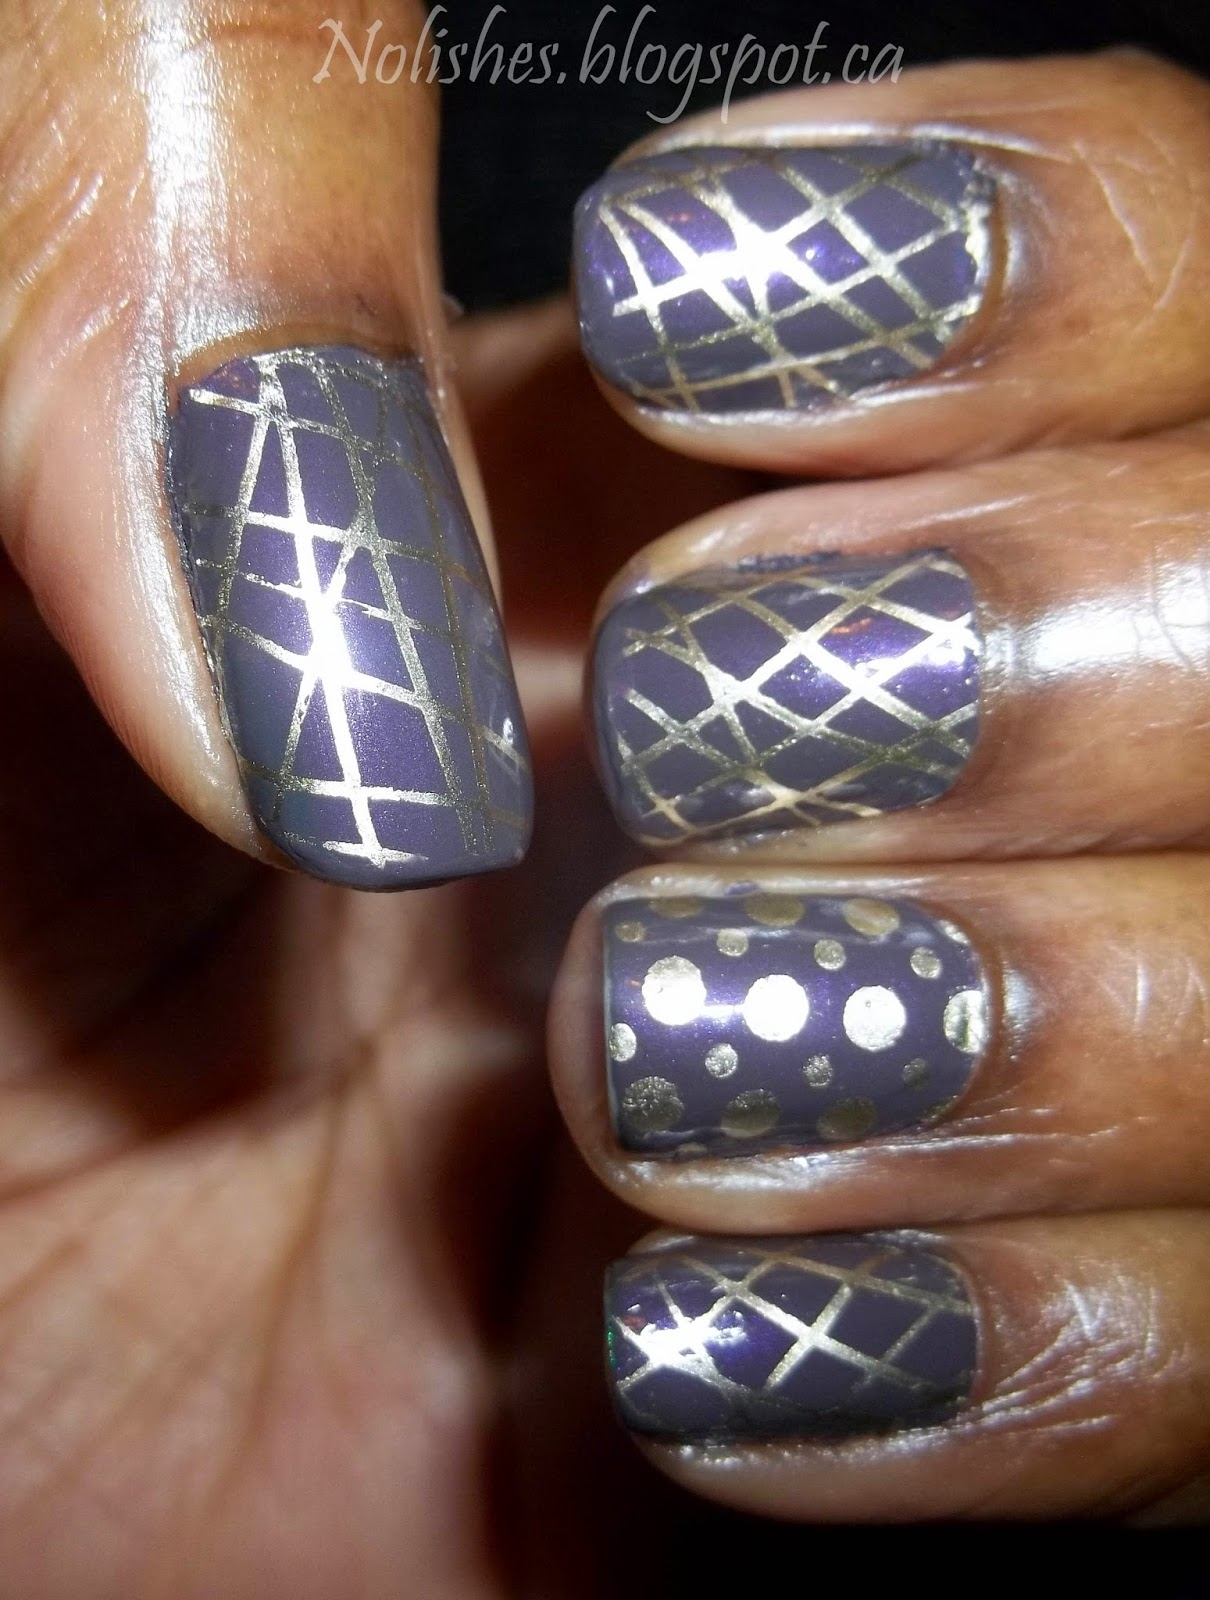 Purple and Gold Nail Stamping Manicure using Revlon 'Naughty' and Sally Hansen 'Liquid Gold'. Stamped with dot and line full nail patterns from DRK Nails stamping plate DRK-A